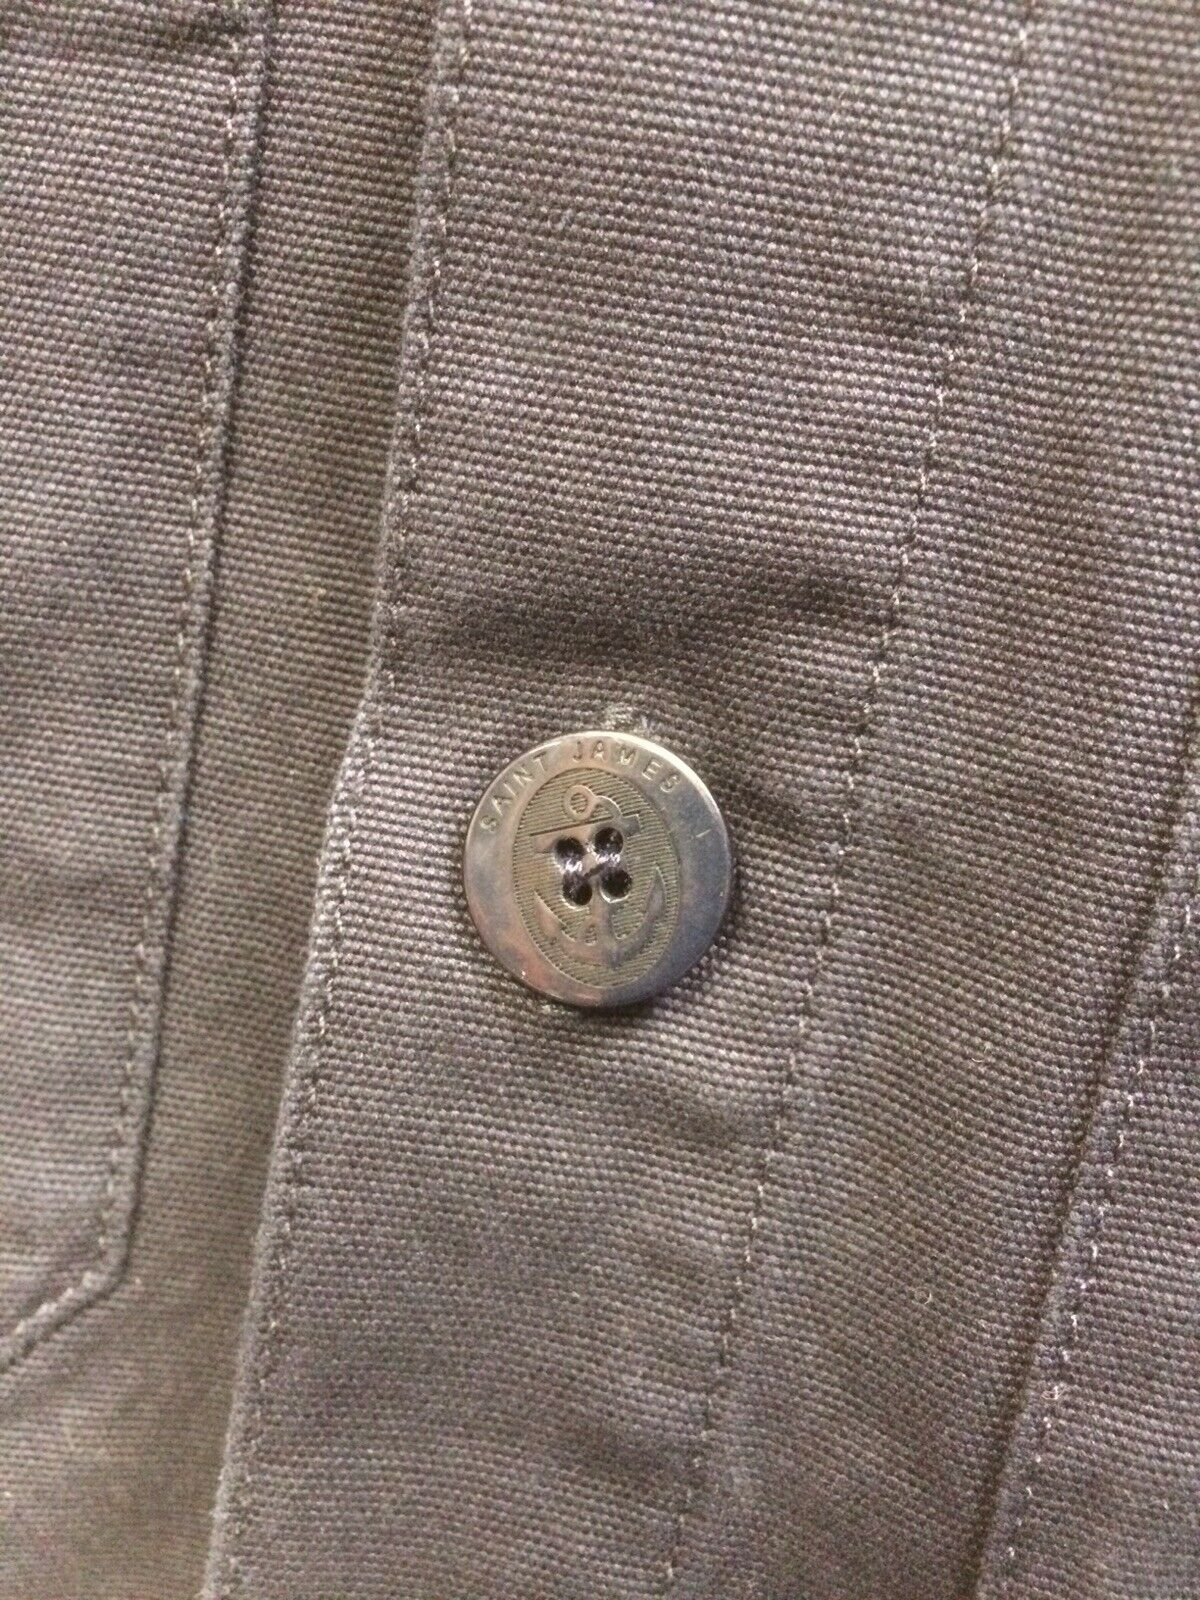 Canvas Jacket Navy Blue Sirocco 11 Made in France by Saint James Cotton Canvas